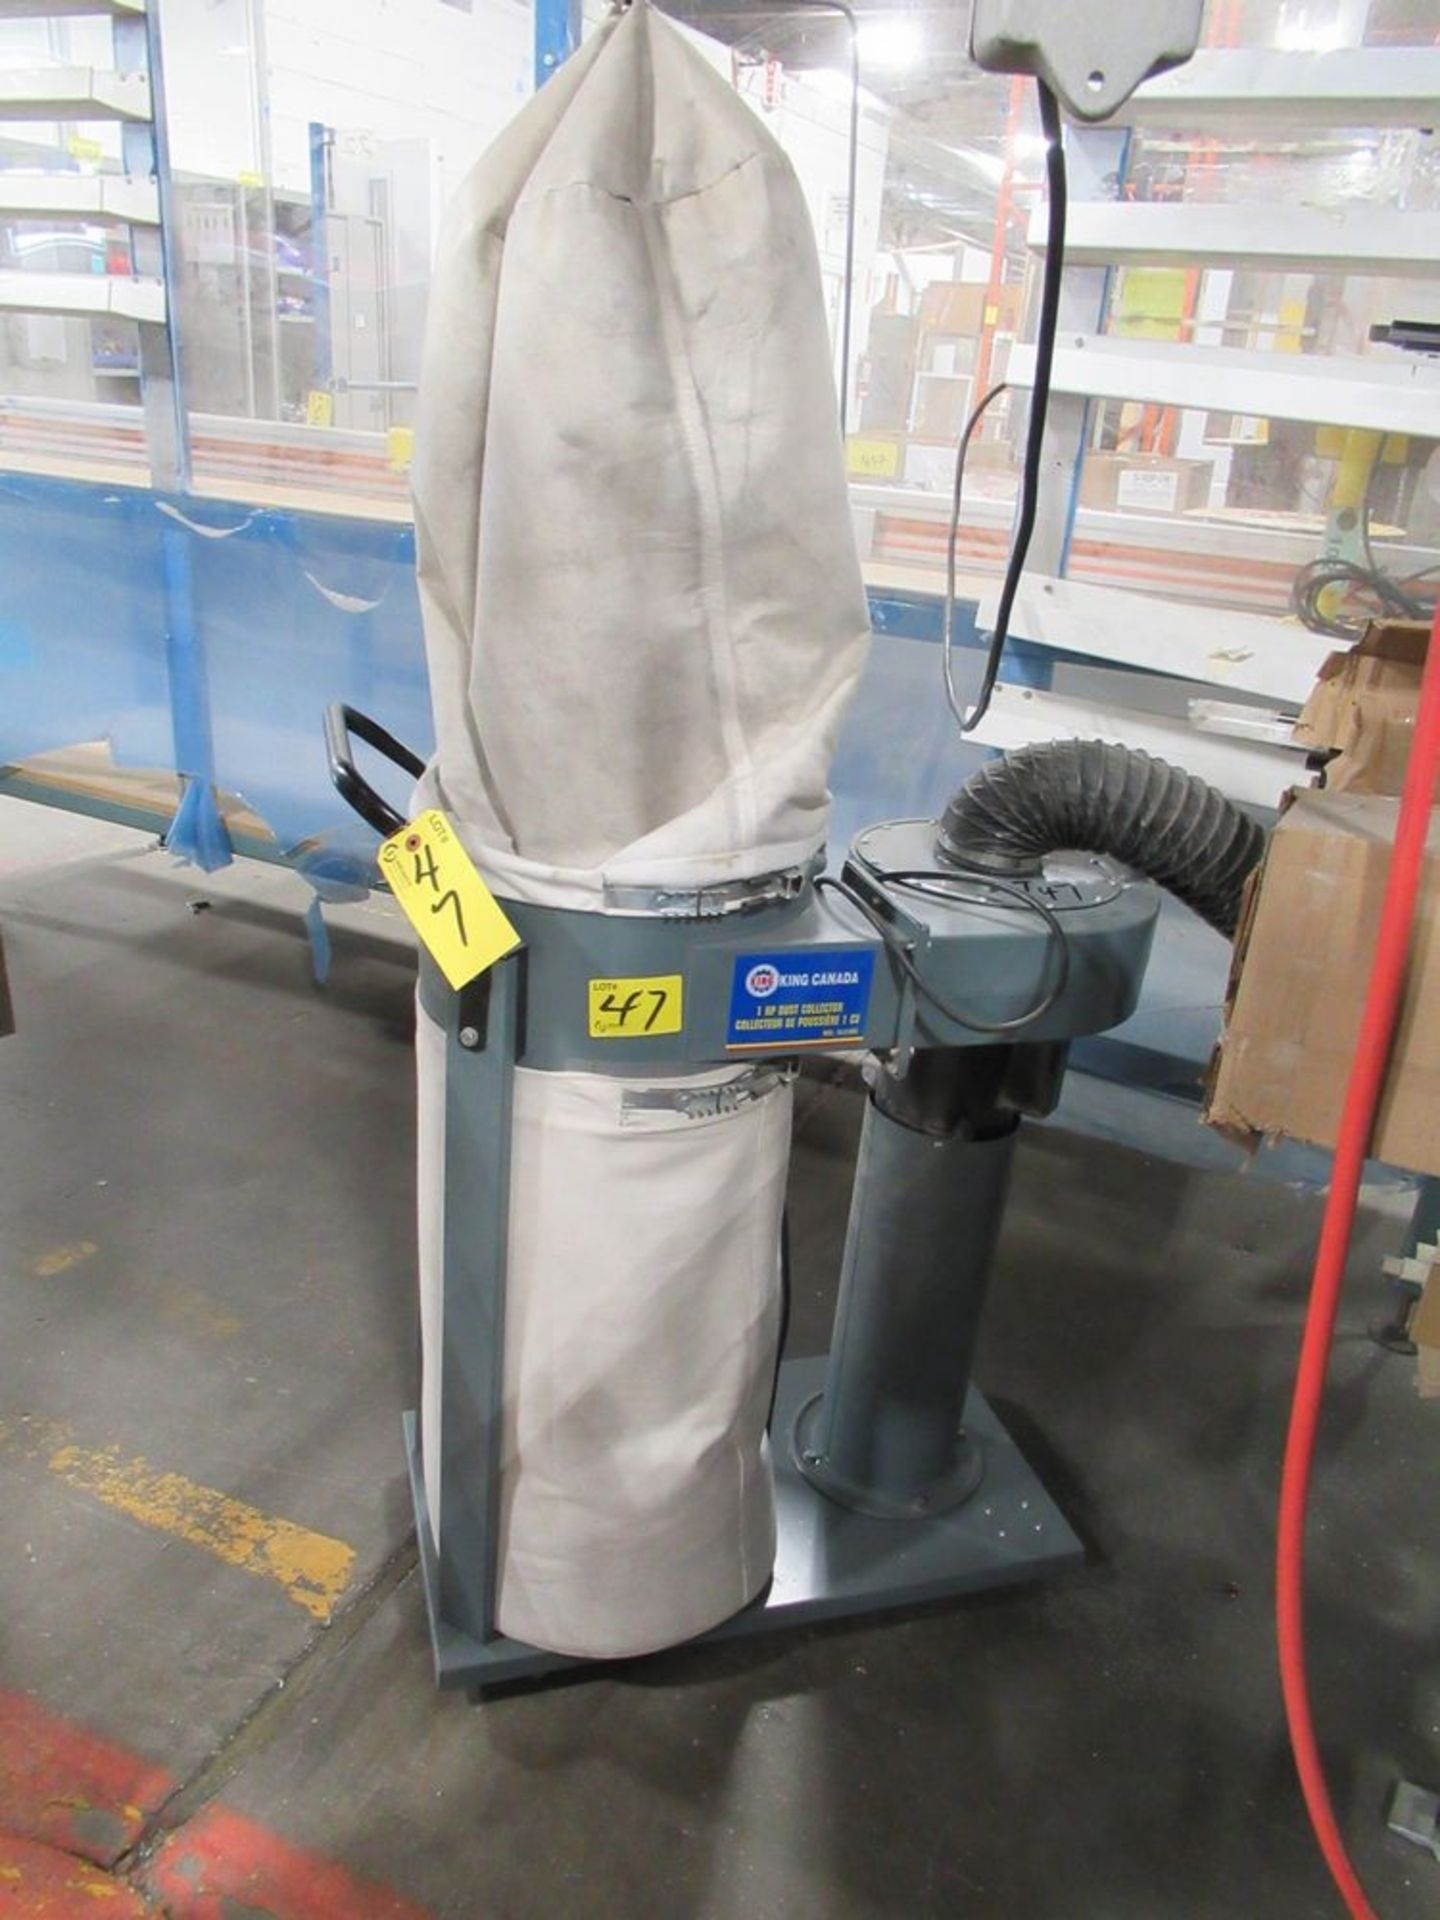 2016 KING CANADA KC-2105C 1HP PORTABLE DUST COLLECTOR, S/N 000374 - Image 2 of 3